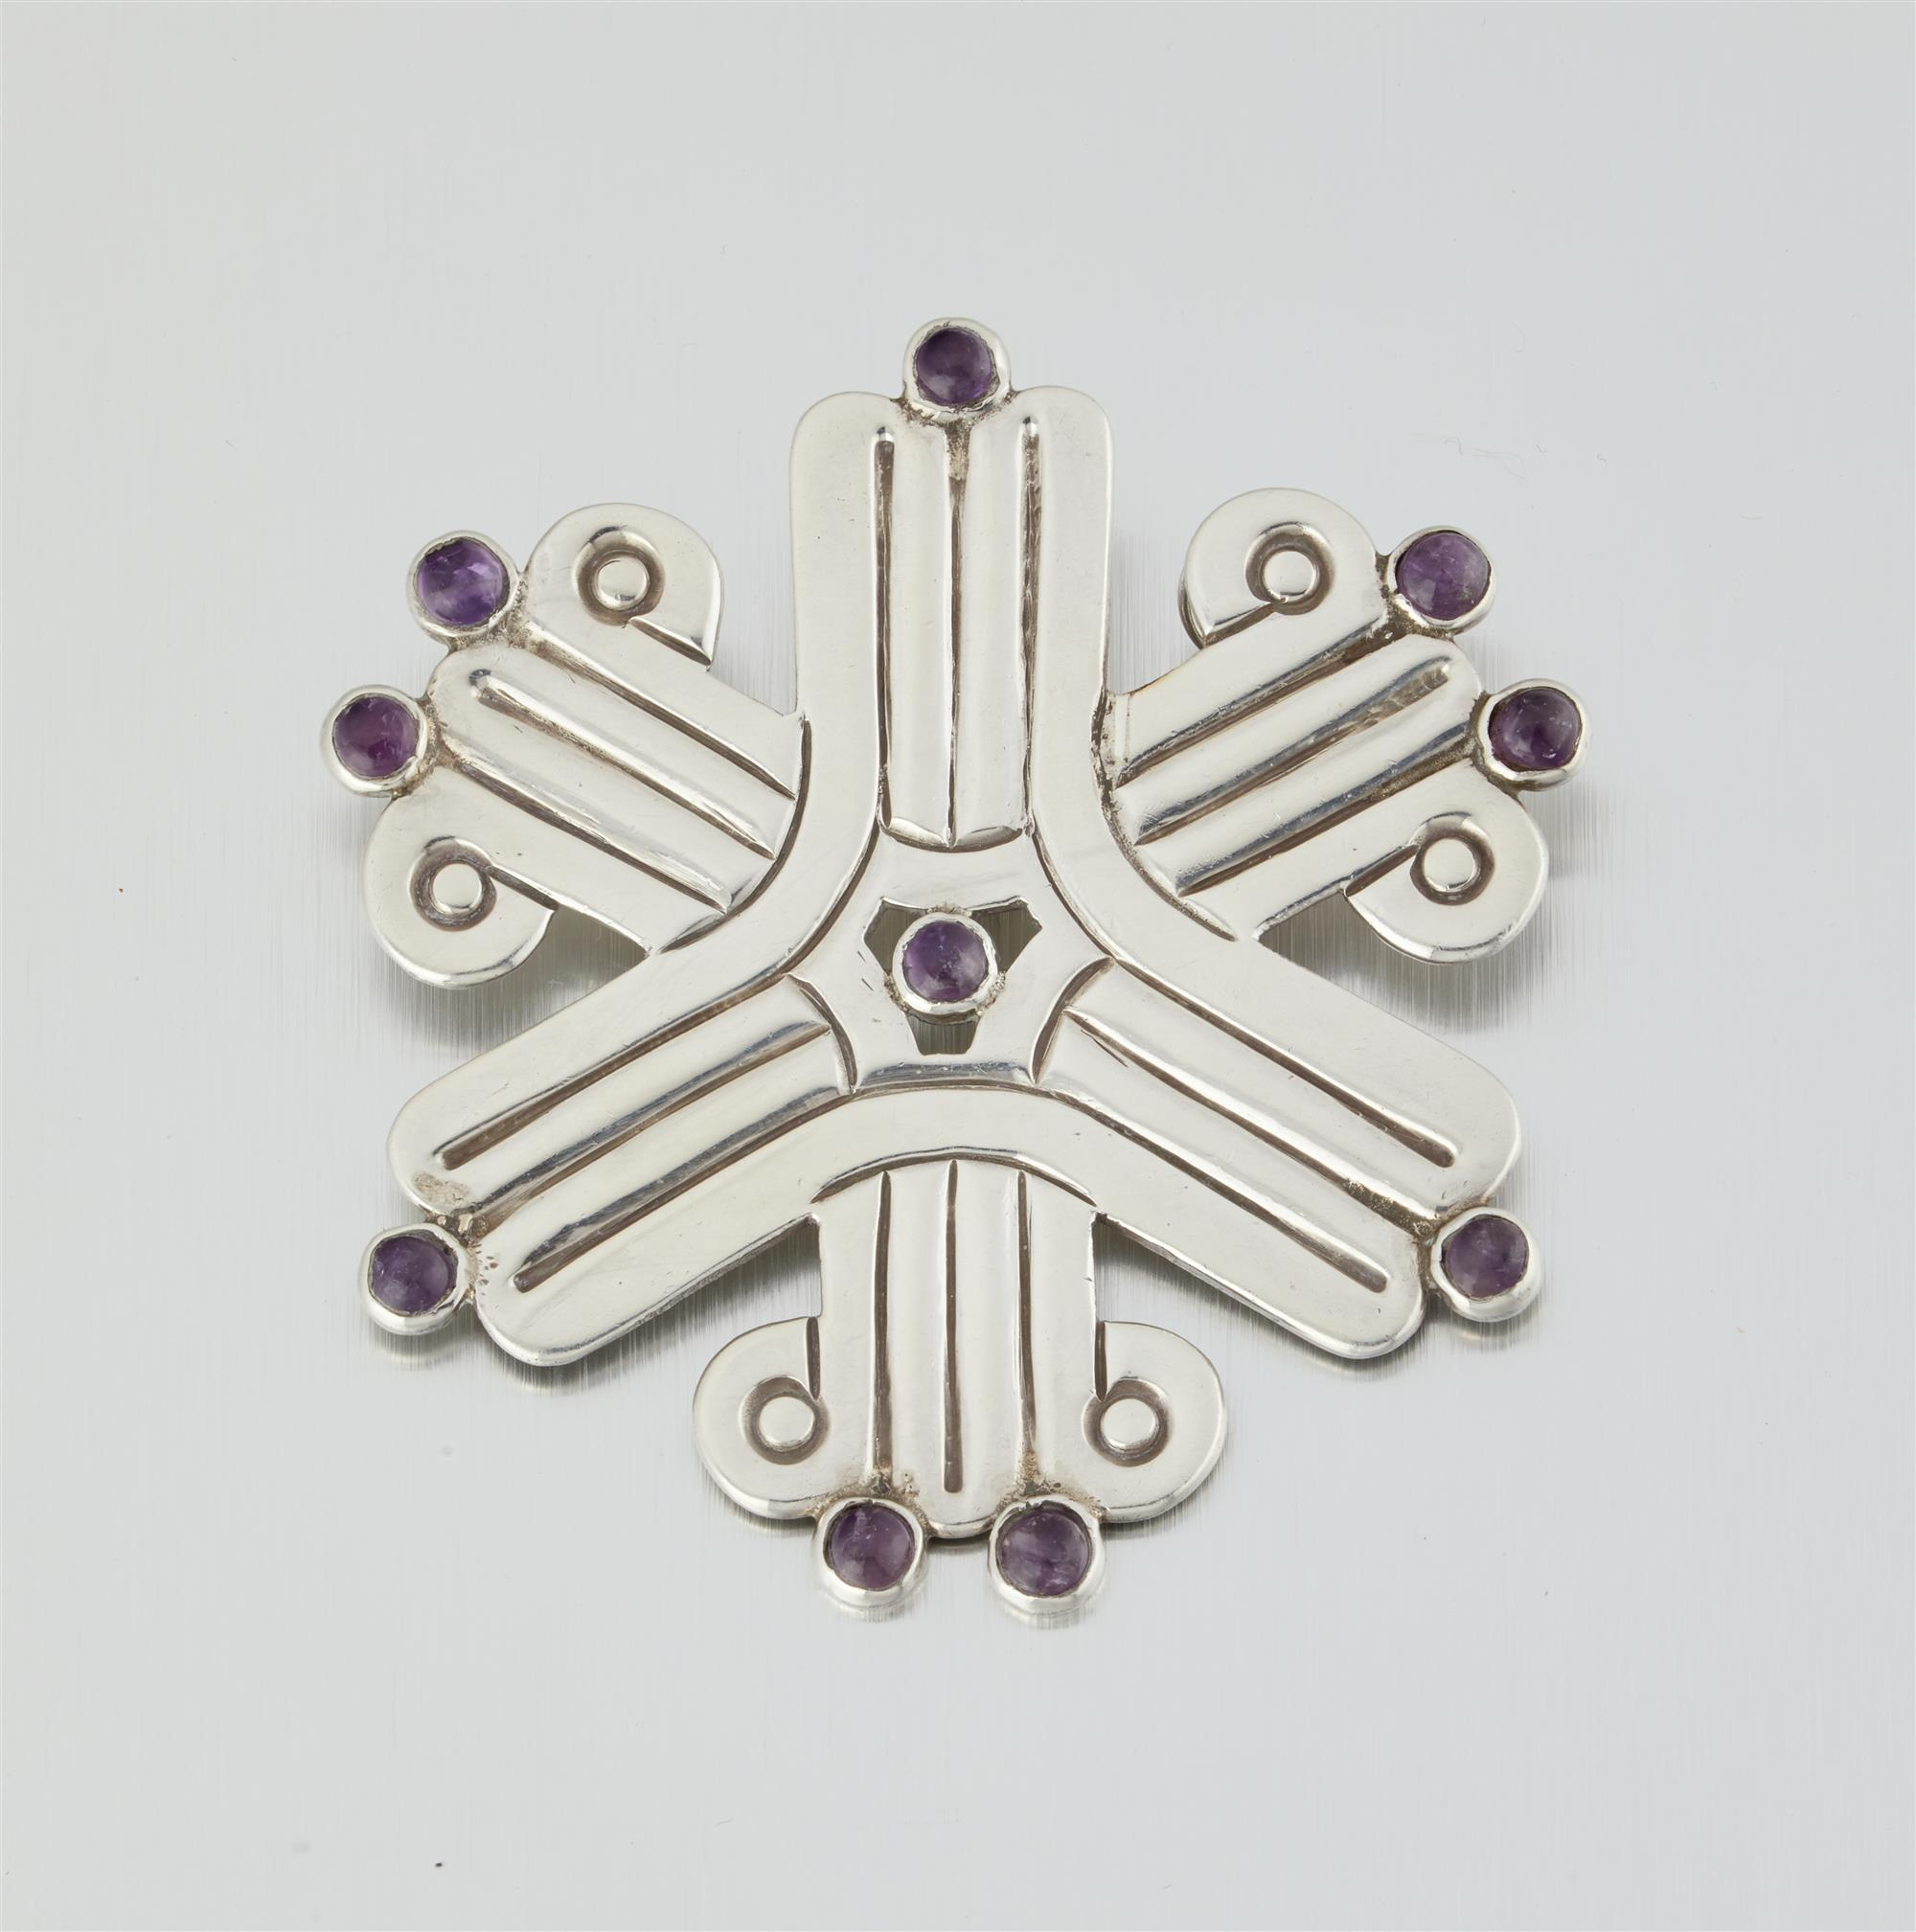 A William Spratling sterling silver and amethyst brooch/pendant